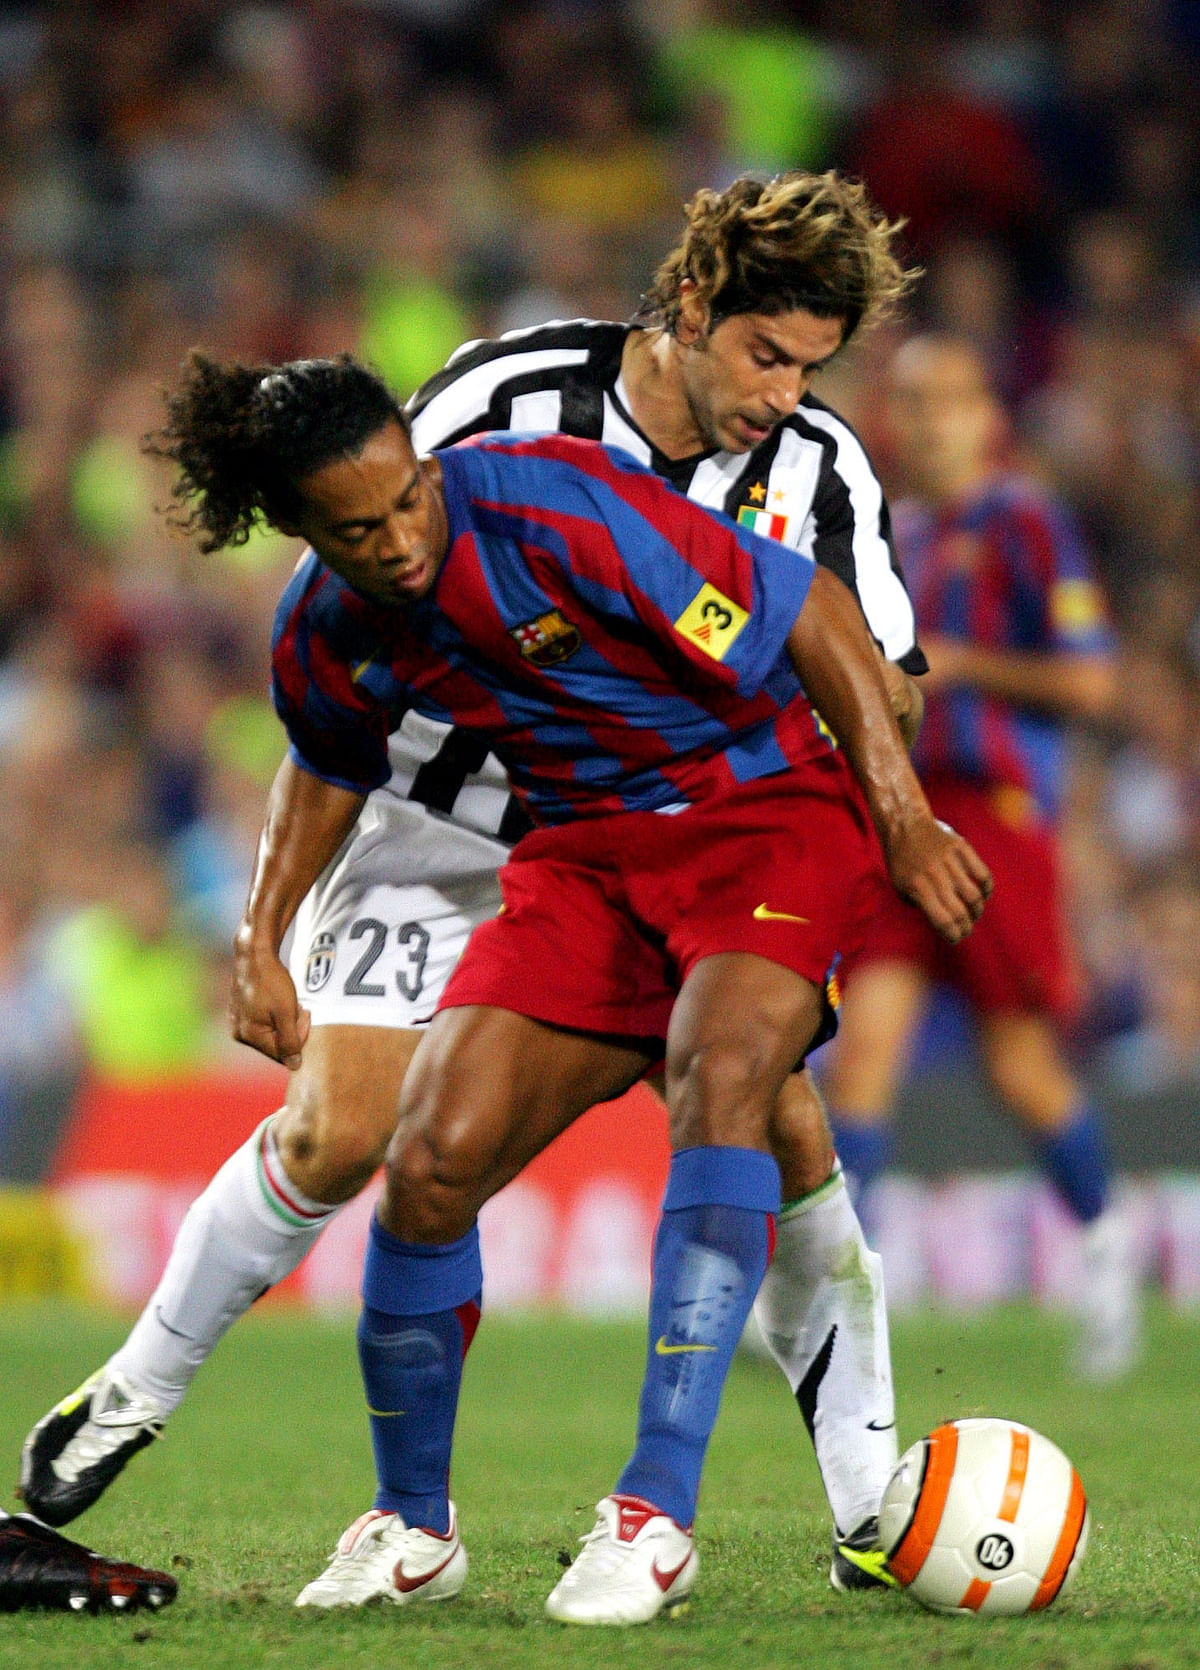 Barcelona's Brazilian soccer player Ronaldinho (L) with Juventus' Giannichedda during their friendly soccer match for the Joan Gamper Trophyin Barcelona August 24, 2005. (Photo: Reuters)